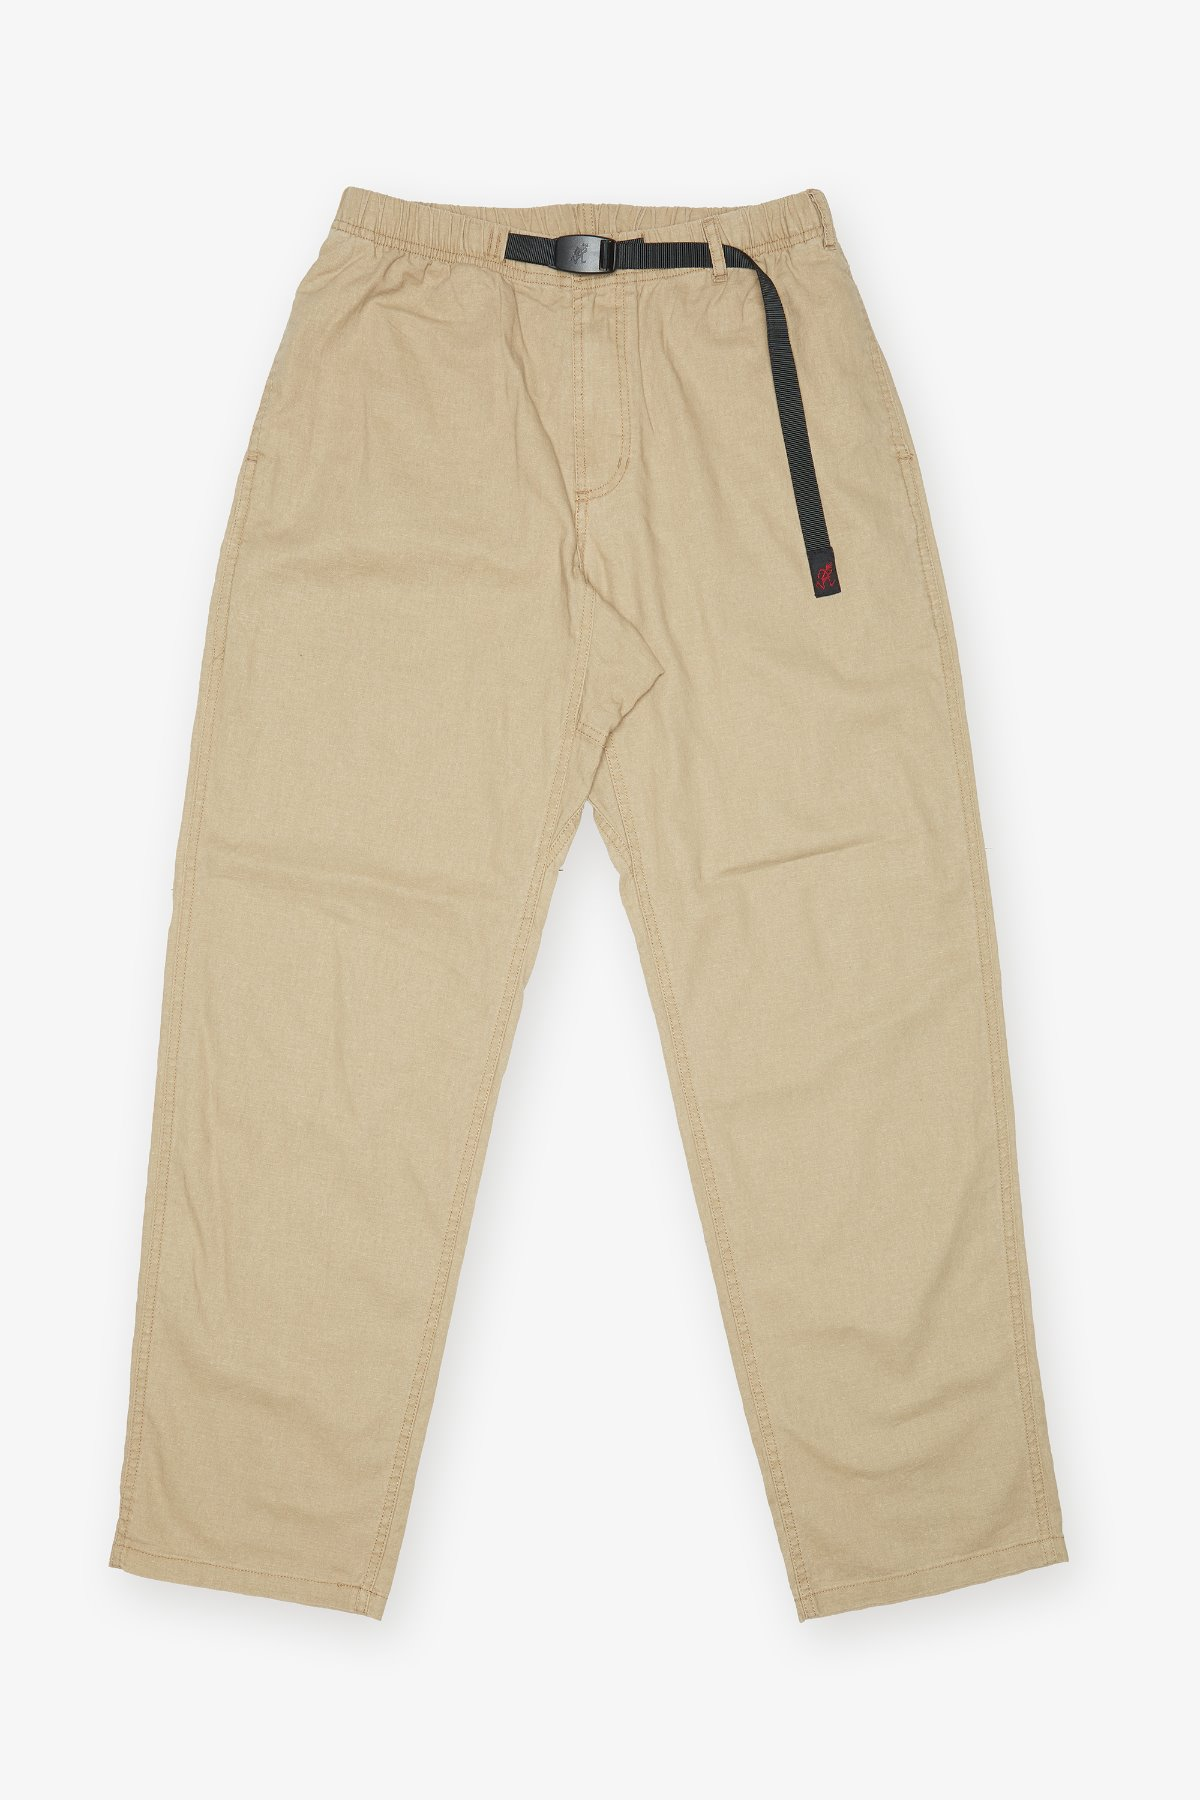 LINEN COTTON GRAMICCI PANTS BEIGE